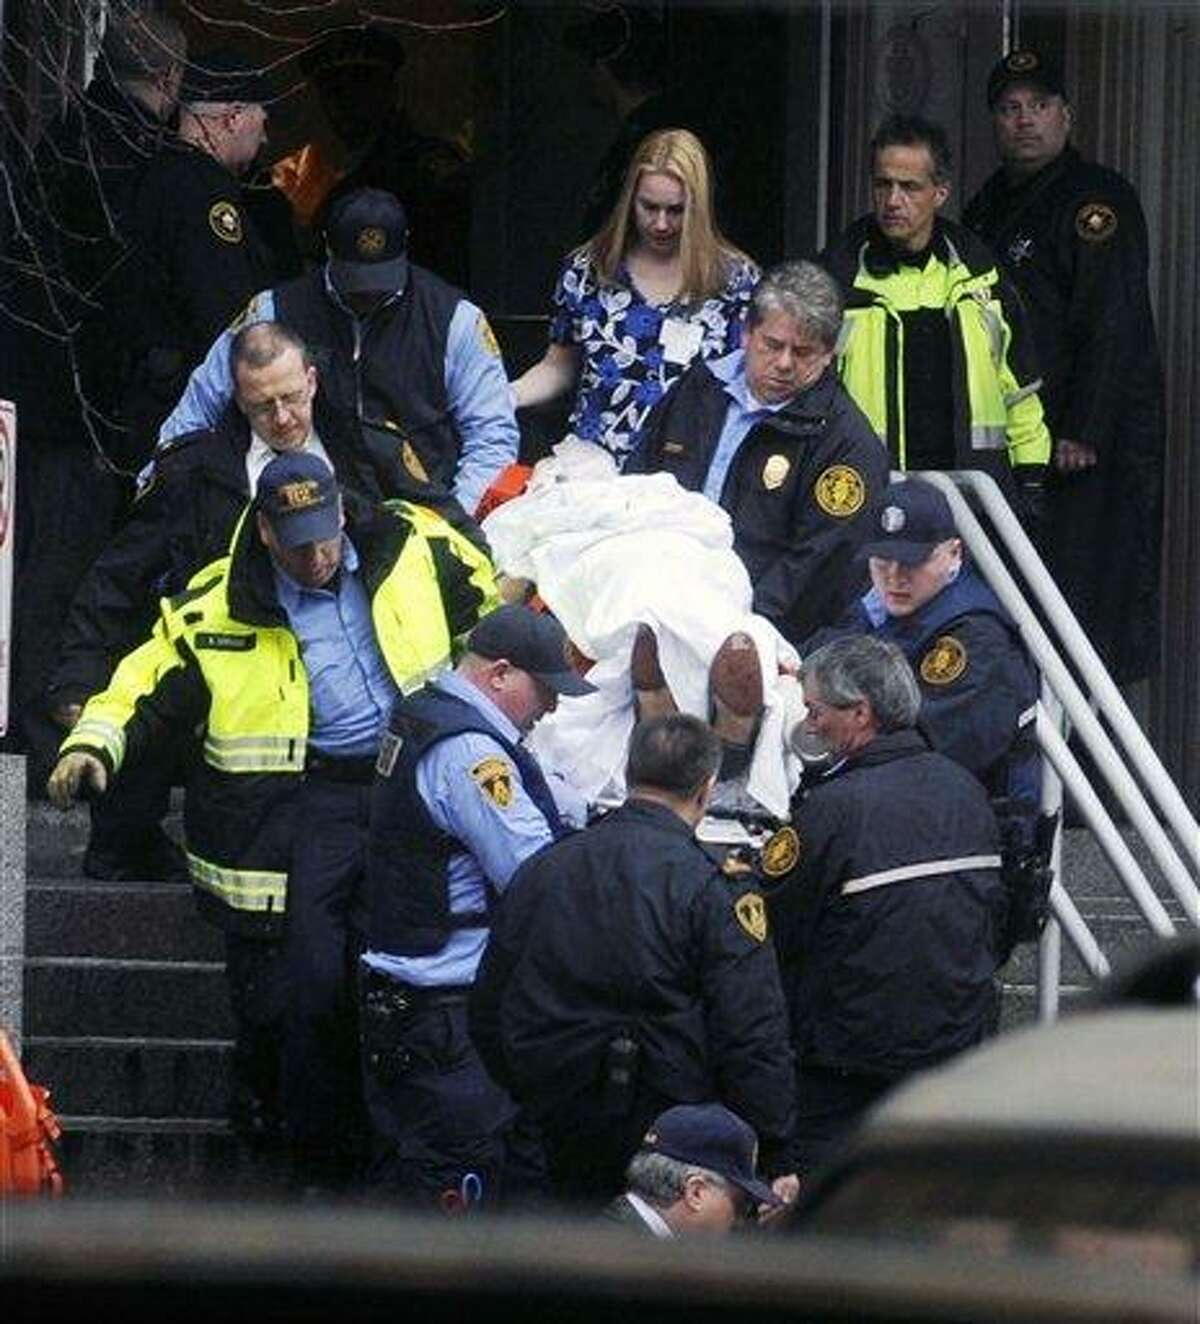 Paramedics and police carry a shooting victim from Western Psychiatric Institute and Clinic Thursday, in Pittsburgh. A gunman opened fire at the psychiatric clinic at the University of Pittsburgh in a shooting that killed two people, including the gunman, and wounded seven others. Associated Press